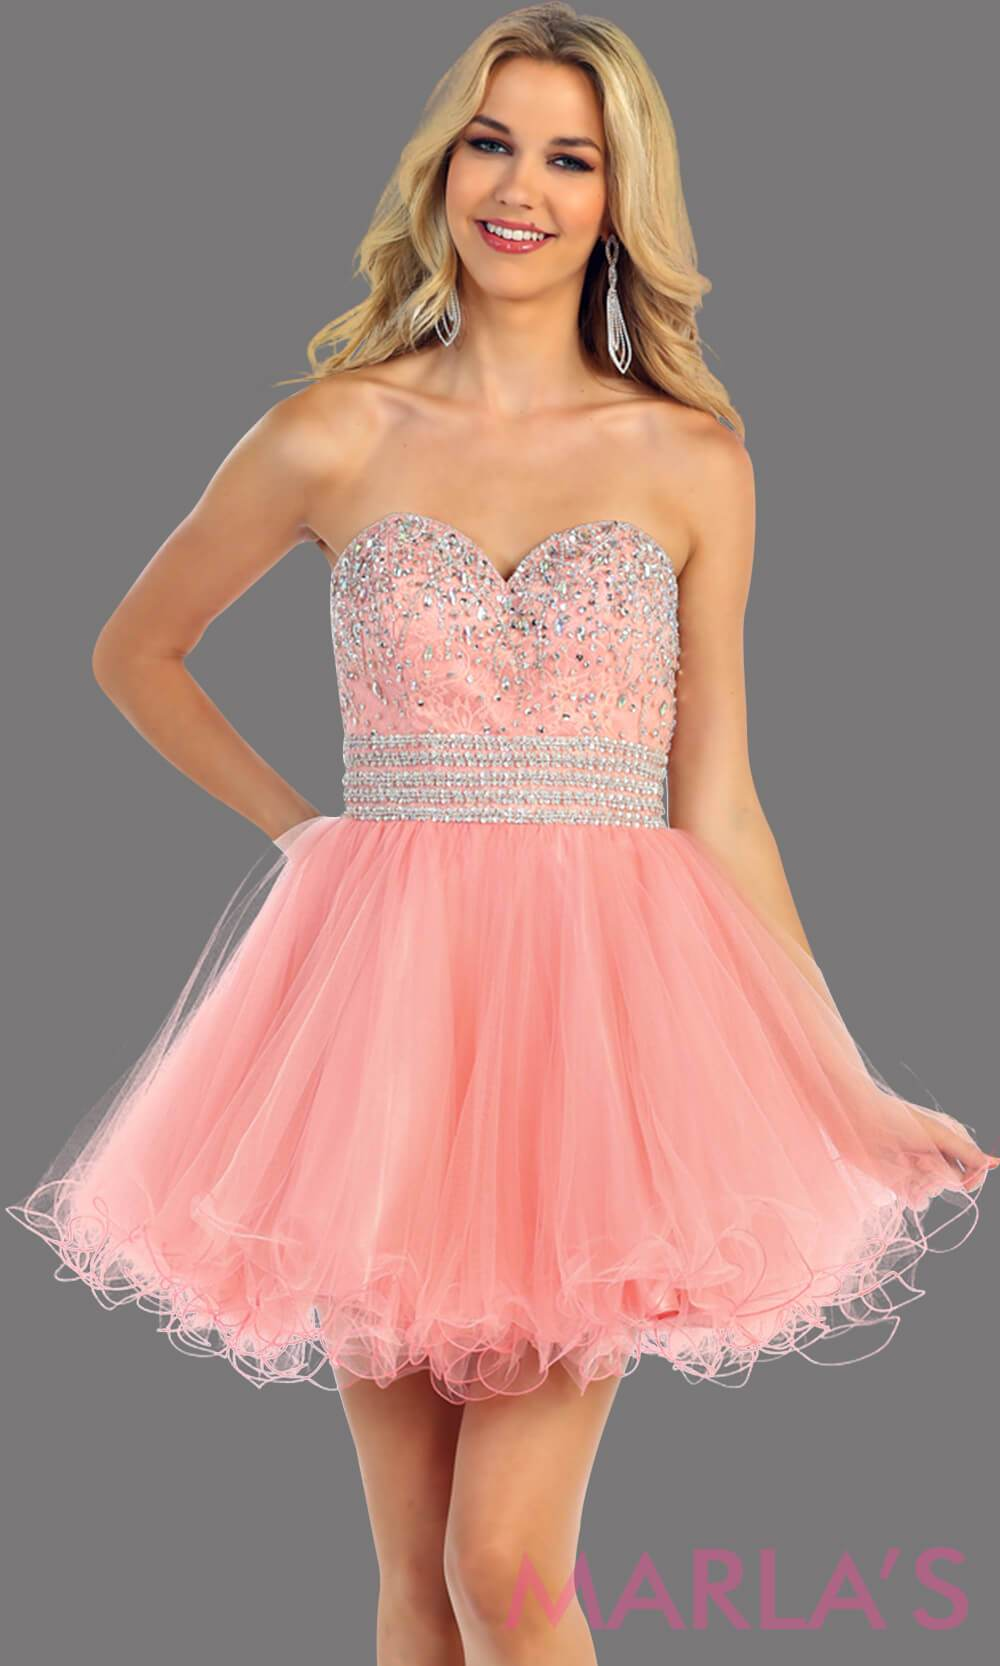 Short puffy blush dress with a beaded bodice features a sweetheart neckline and empire waist that flows into layers of tulle. This pink dress has a corset back and is avail in plus size. Perfect for grade 8 graduation